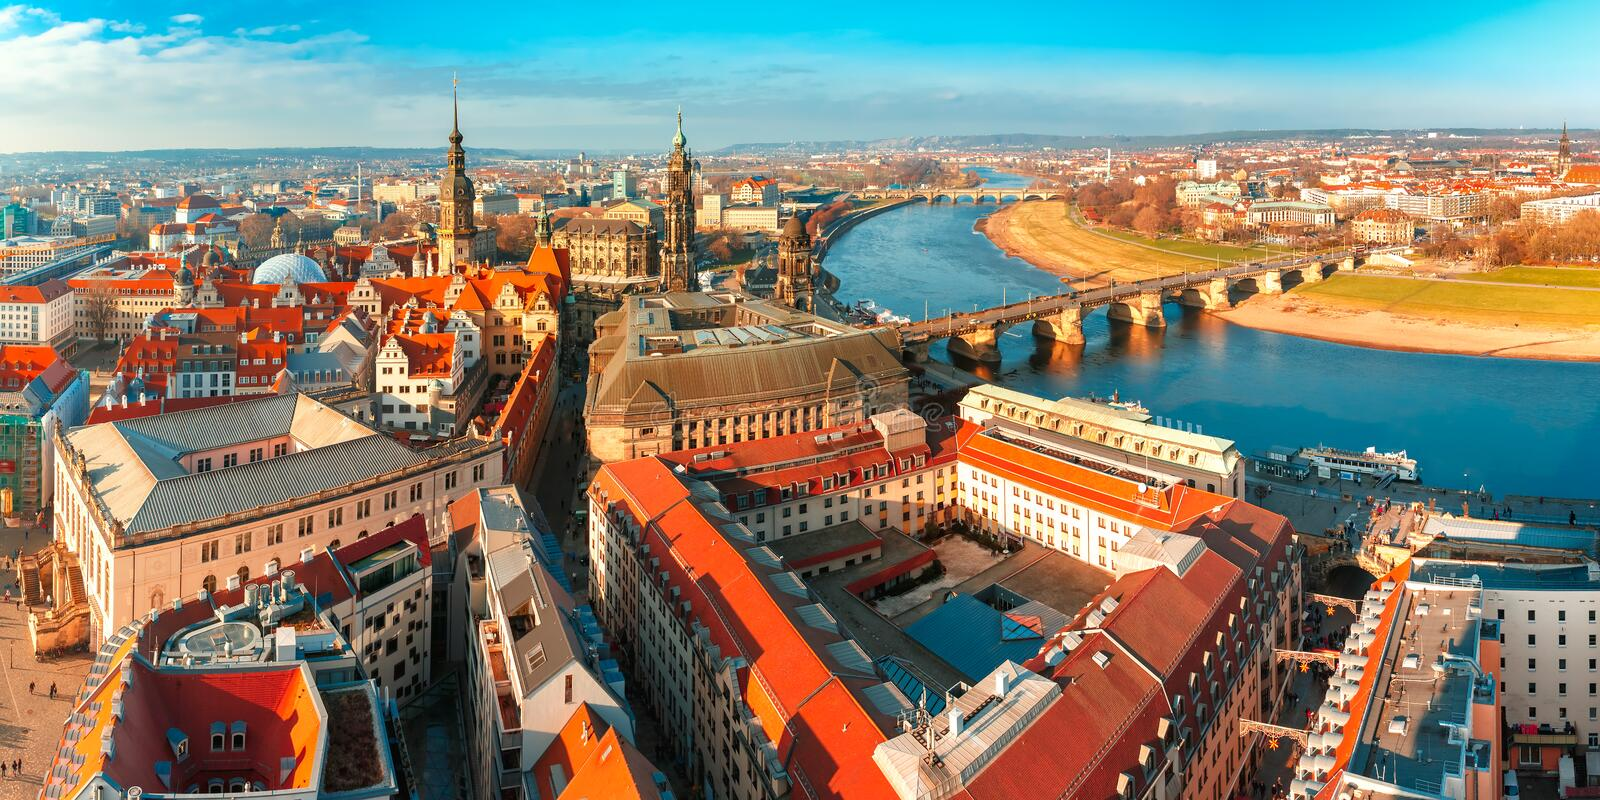 Panorama of Old town and Elbe, Dresden, Germany royalty free stock photos